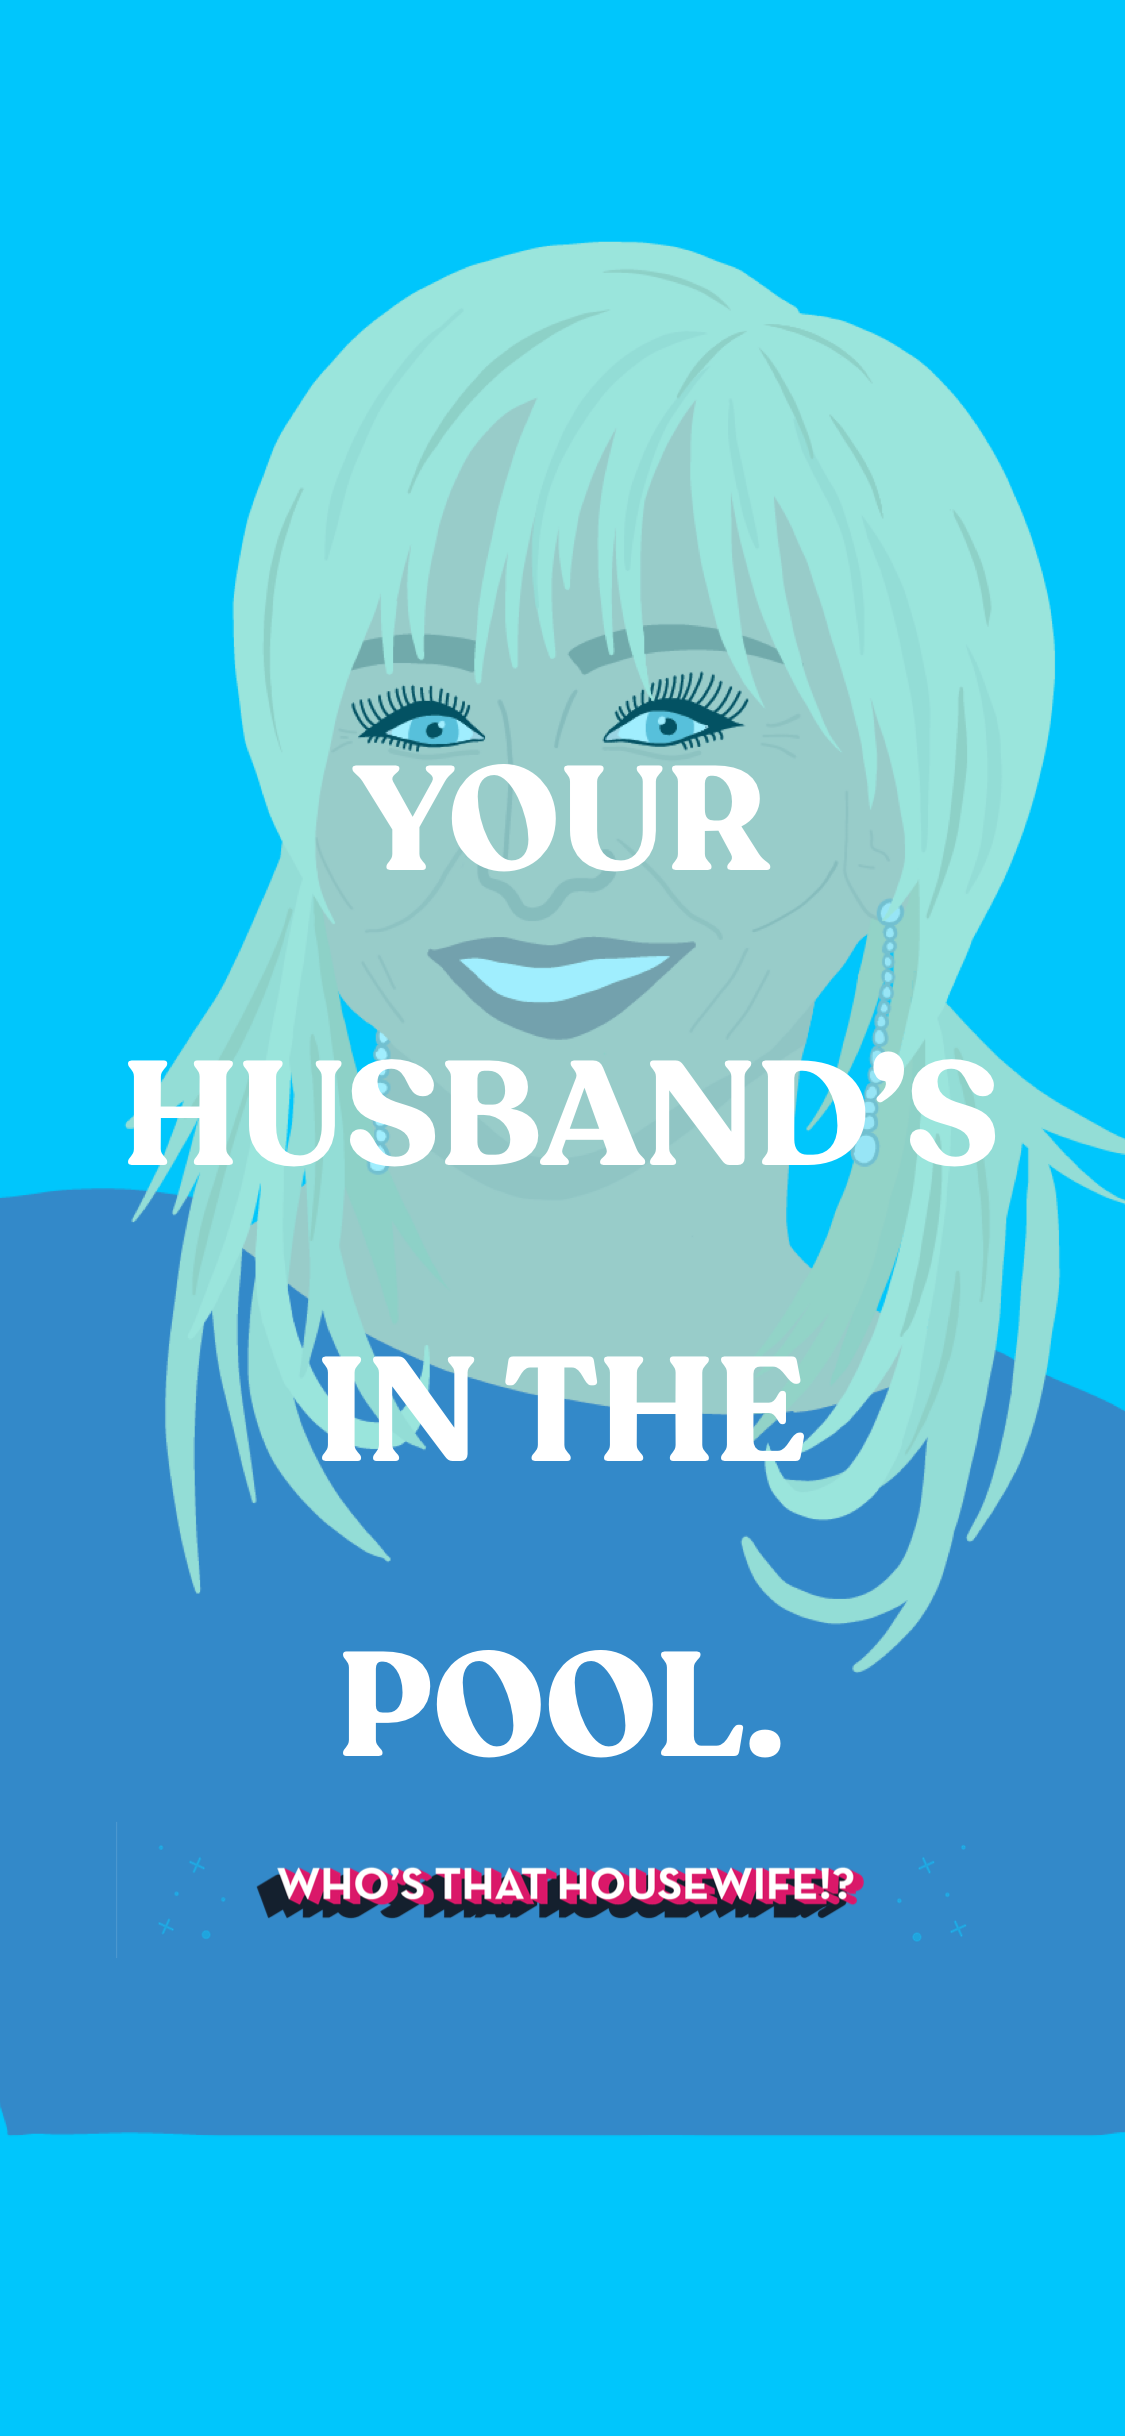 margaret josephs your husbands in the pool quote illustration